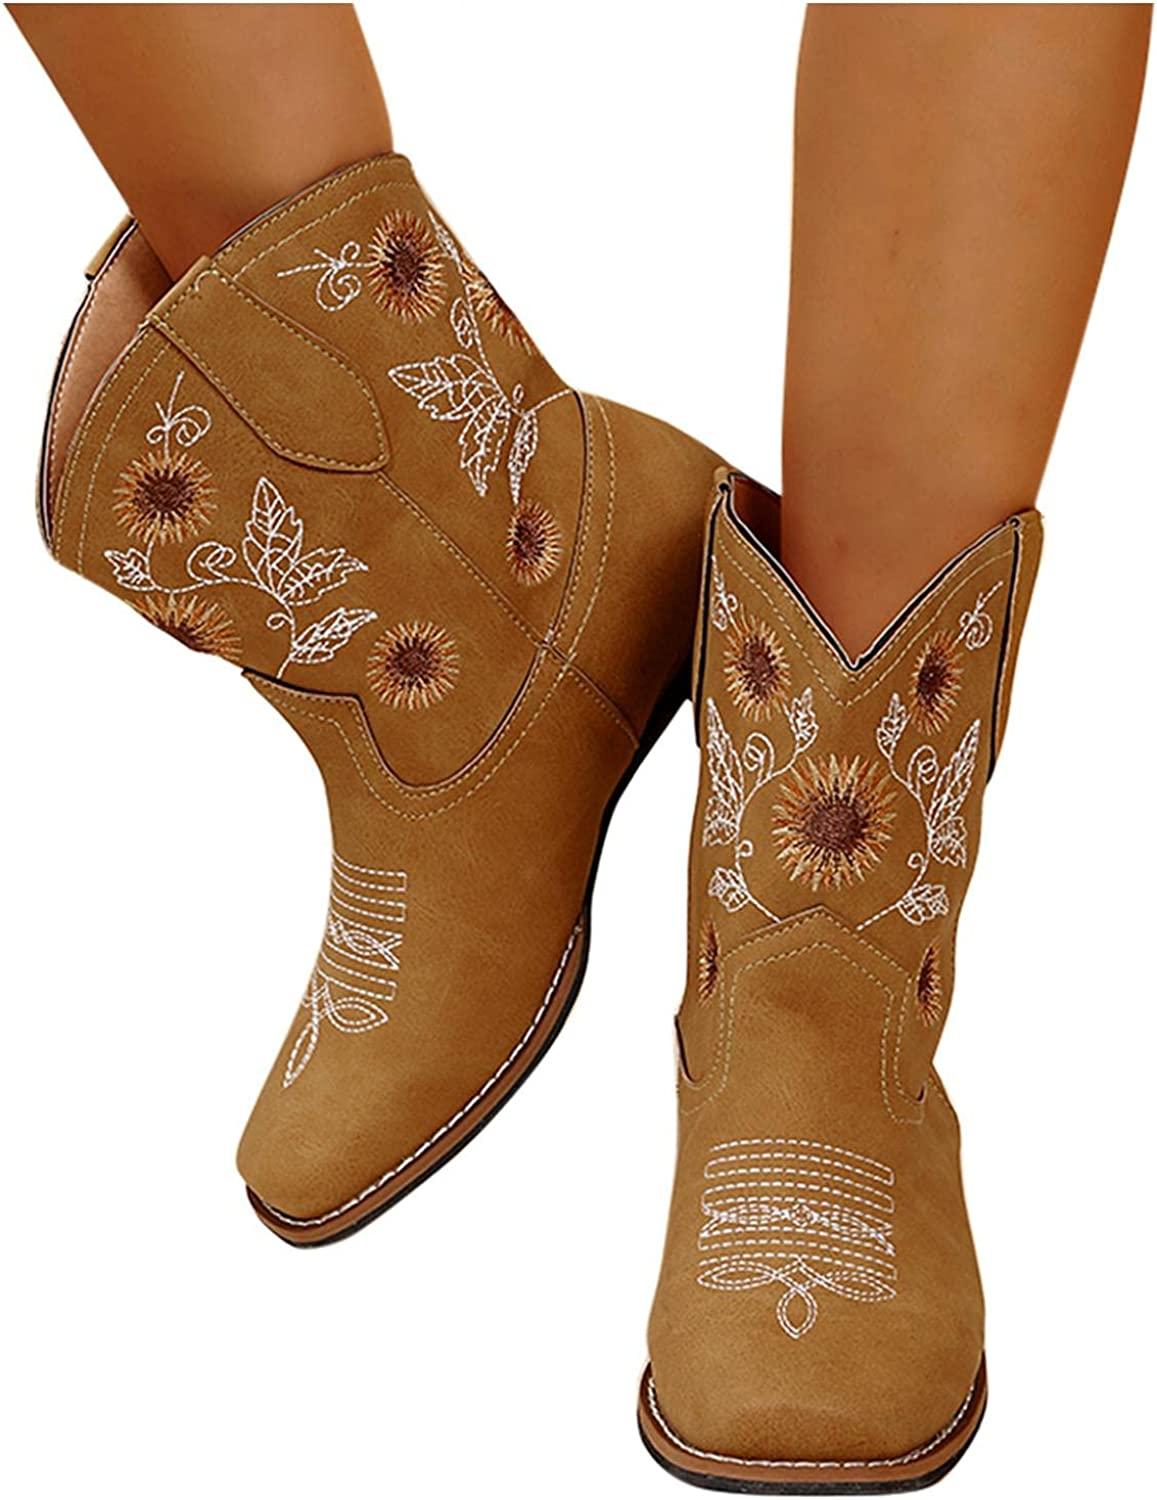 Hbeylia Vintage Western Square Toe Cowboy Bowgirls Boots For Women Bohemian Boho Retro Sunflower Flower Embroidered Chunky Block Low Heels Ankle Booties Wide Mid Calf Knight Riding Boots